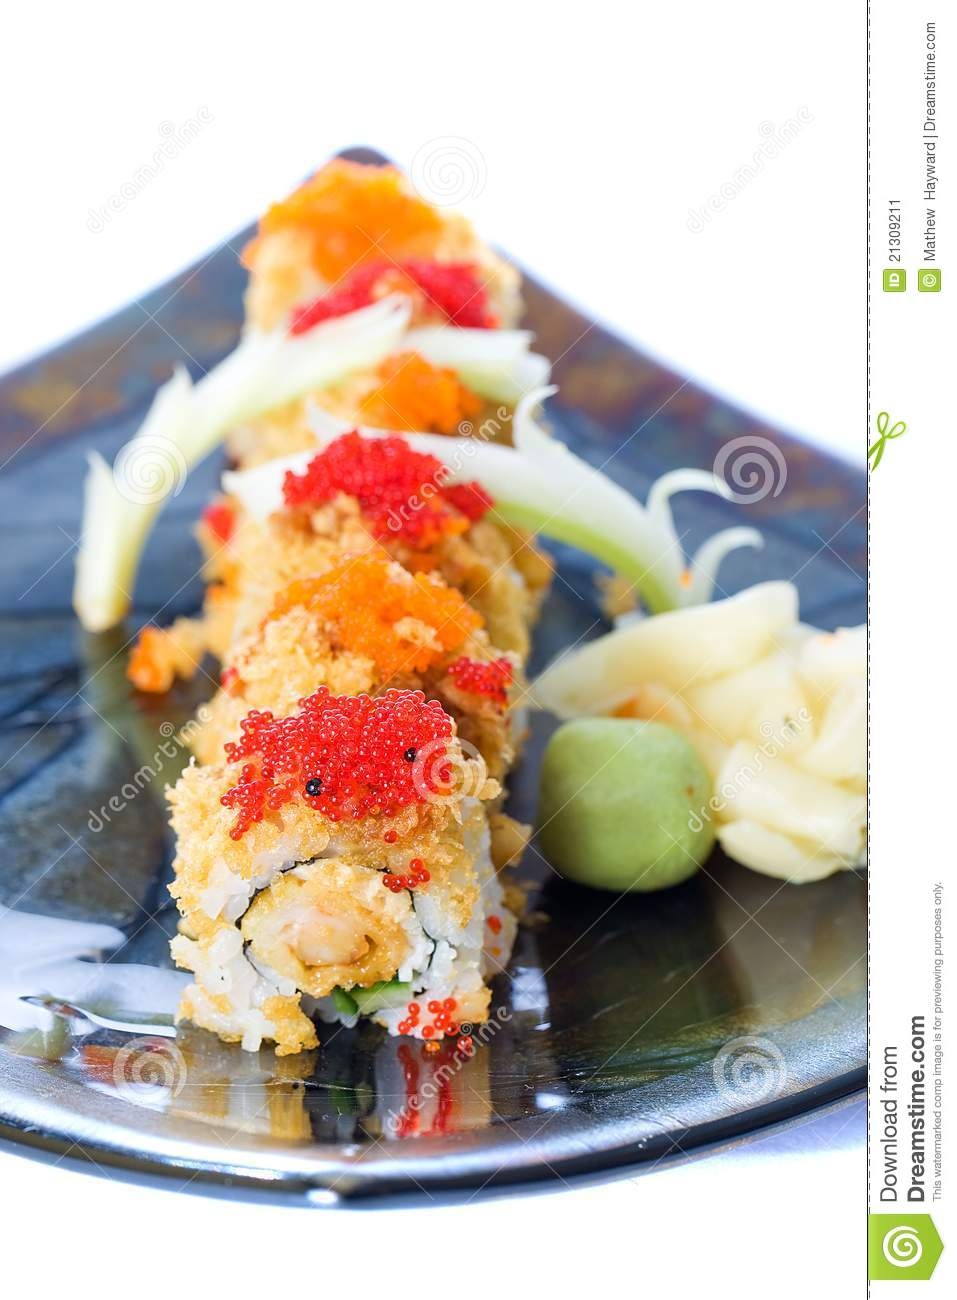 Fish eggs on sushi stock image image 21309211 for Fish eggs on sushi